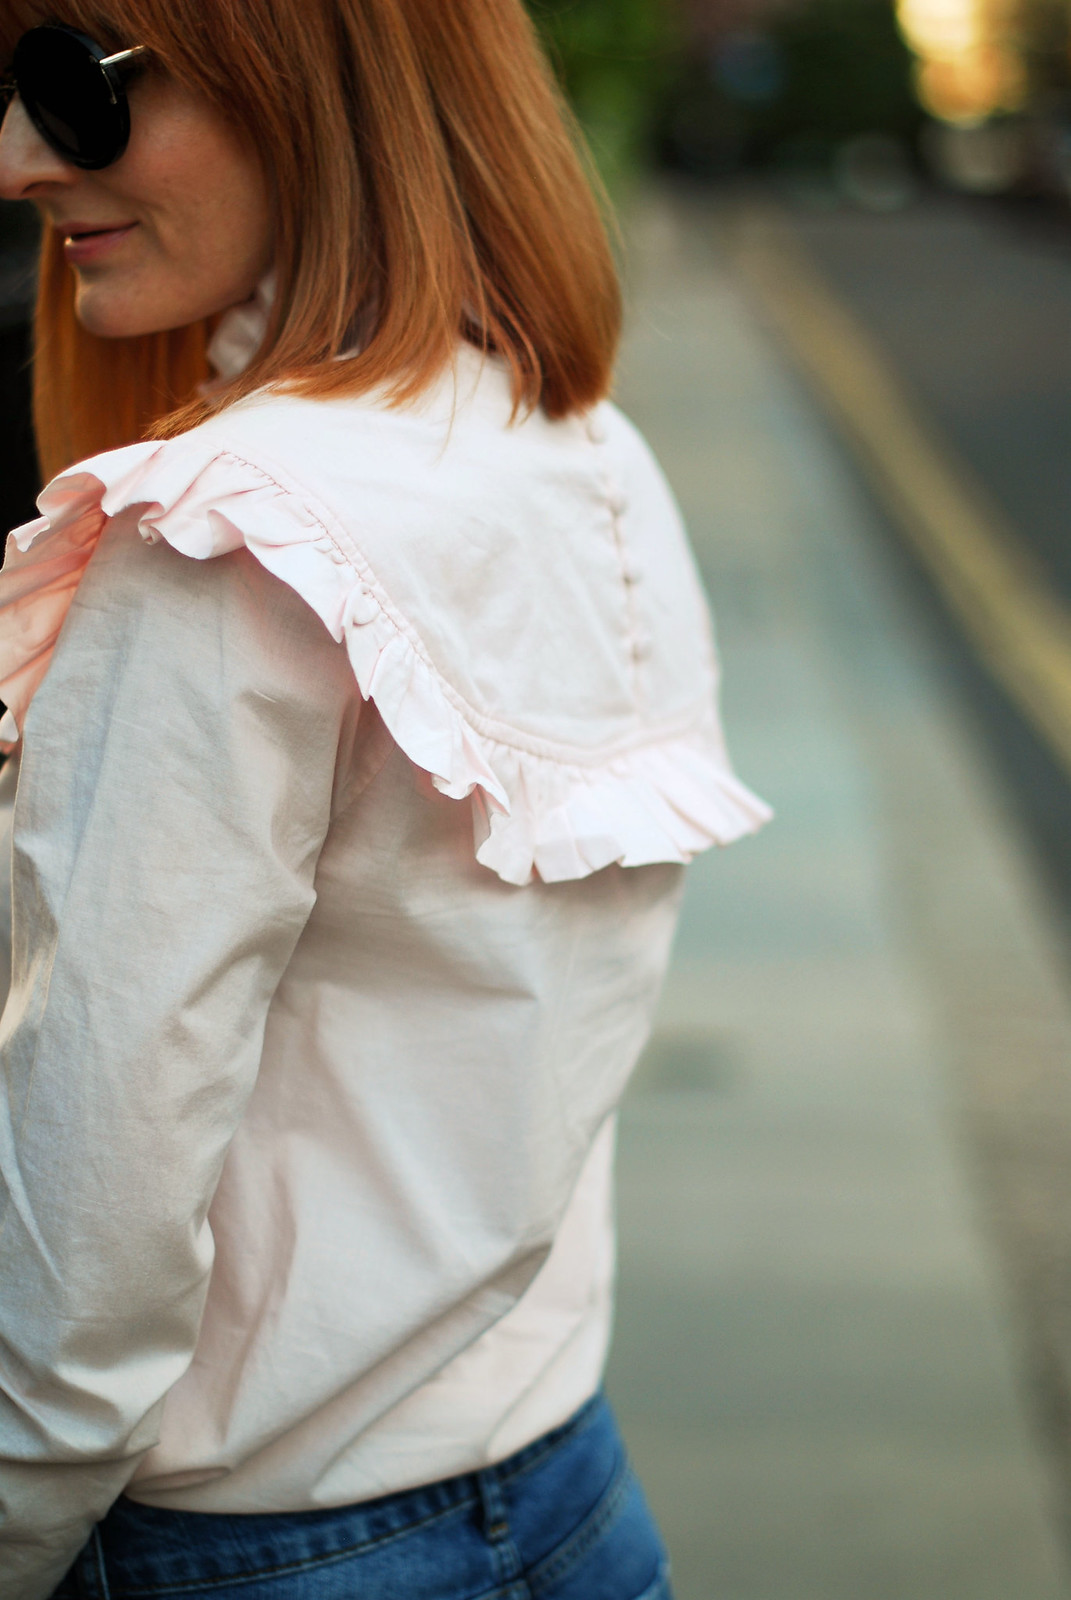 SS16 Style: M&S Archive by Alexa ruffled Harry blouse, distressed boyfriend jeans | Not Dressed As Lamb